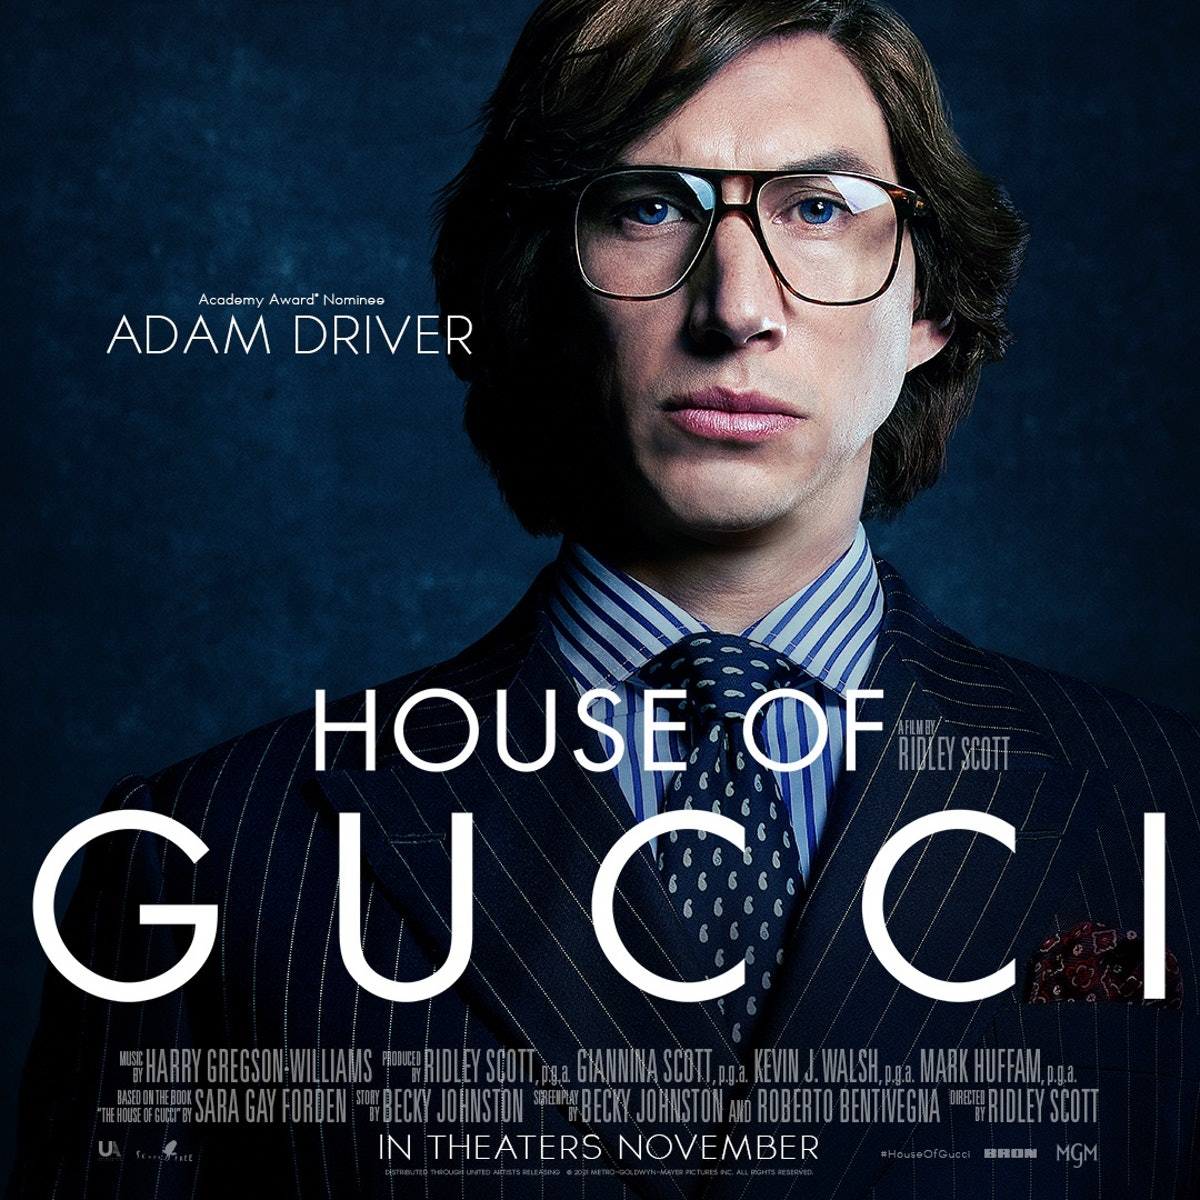 Adam Driver in House of Gucci poster.